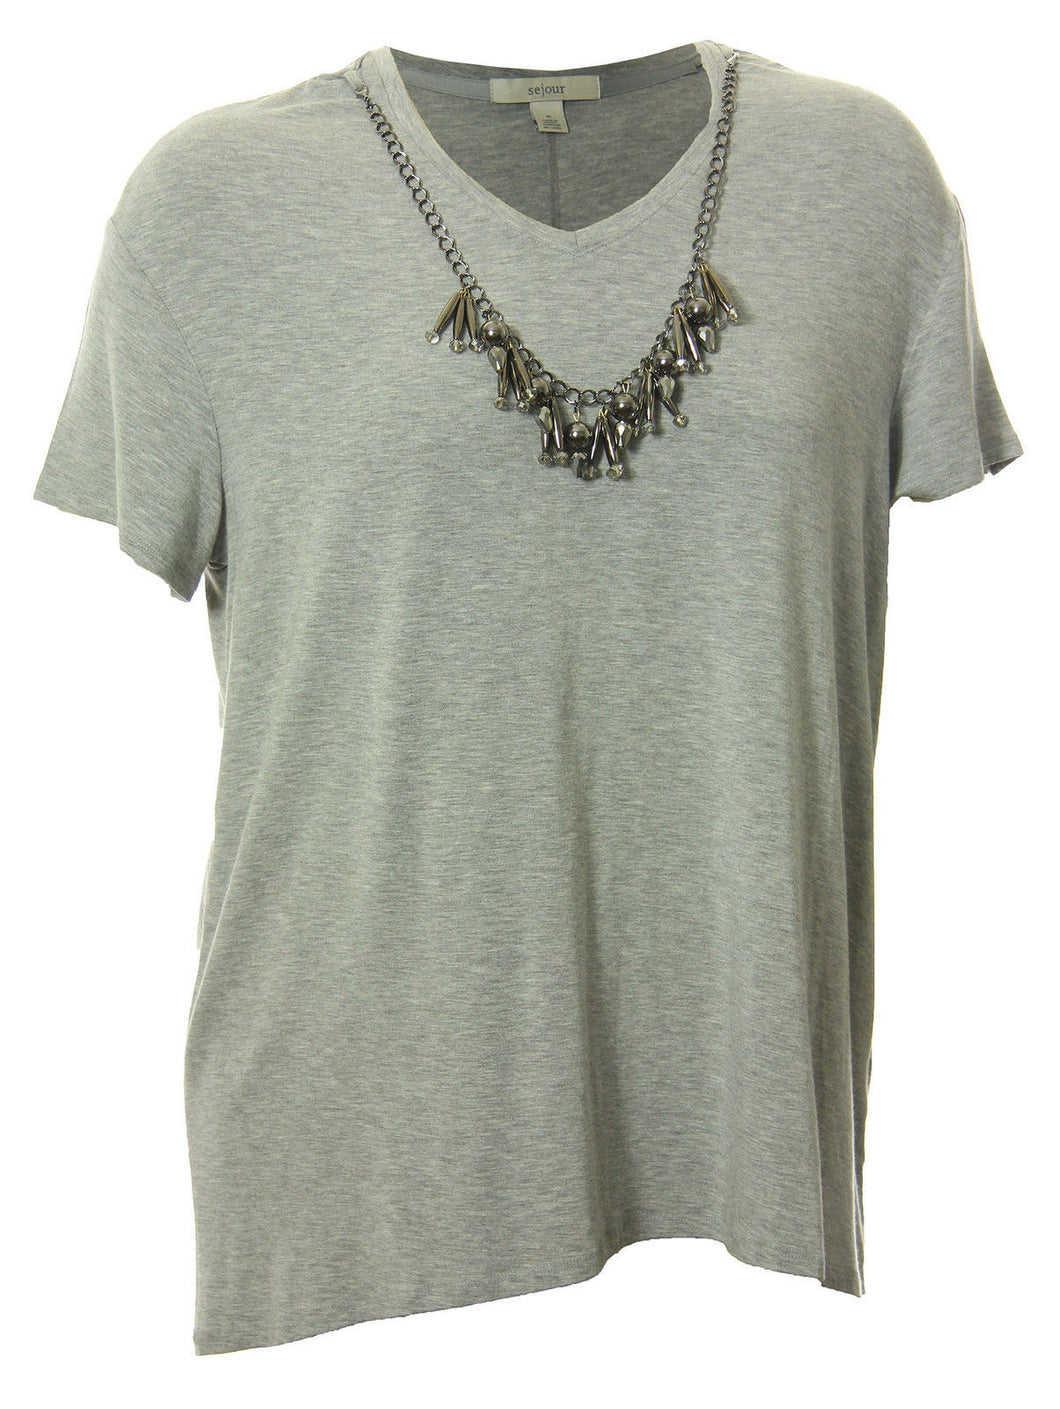 Sejour Gray Short Sleeve Necklace Embellished Knit Top Shirt